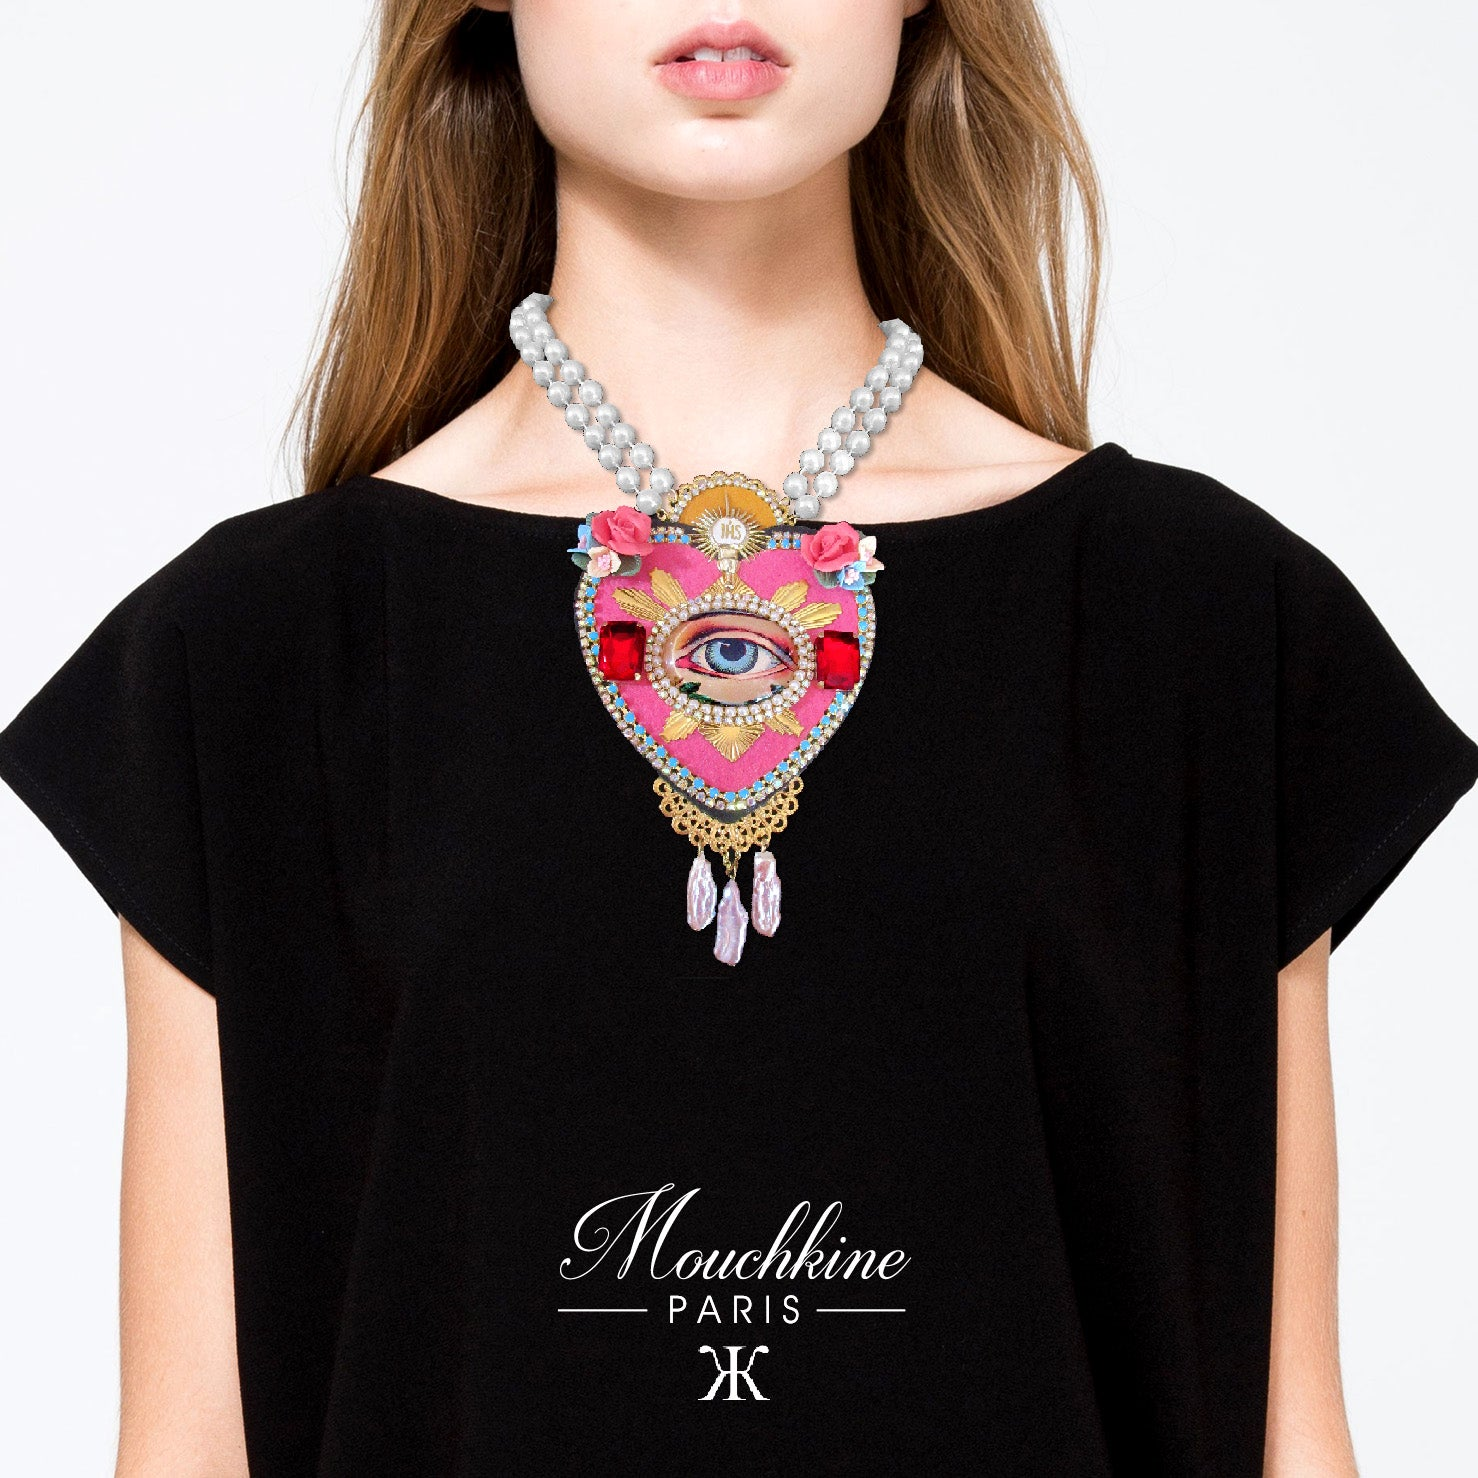 mouchkine jewelry handmade luxury statement pink heart necklace